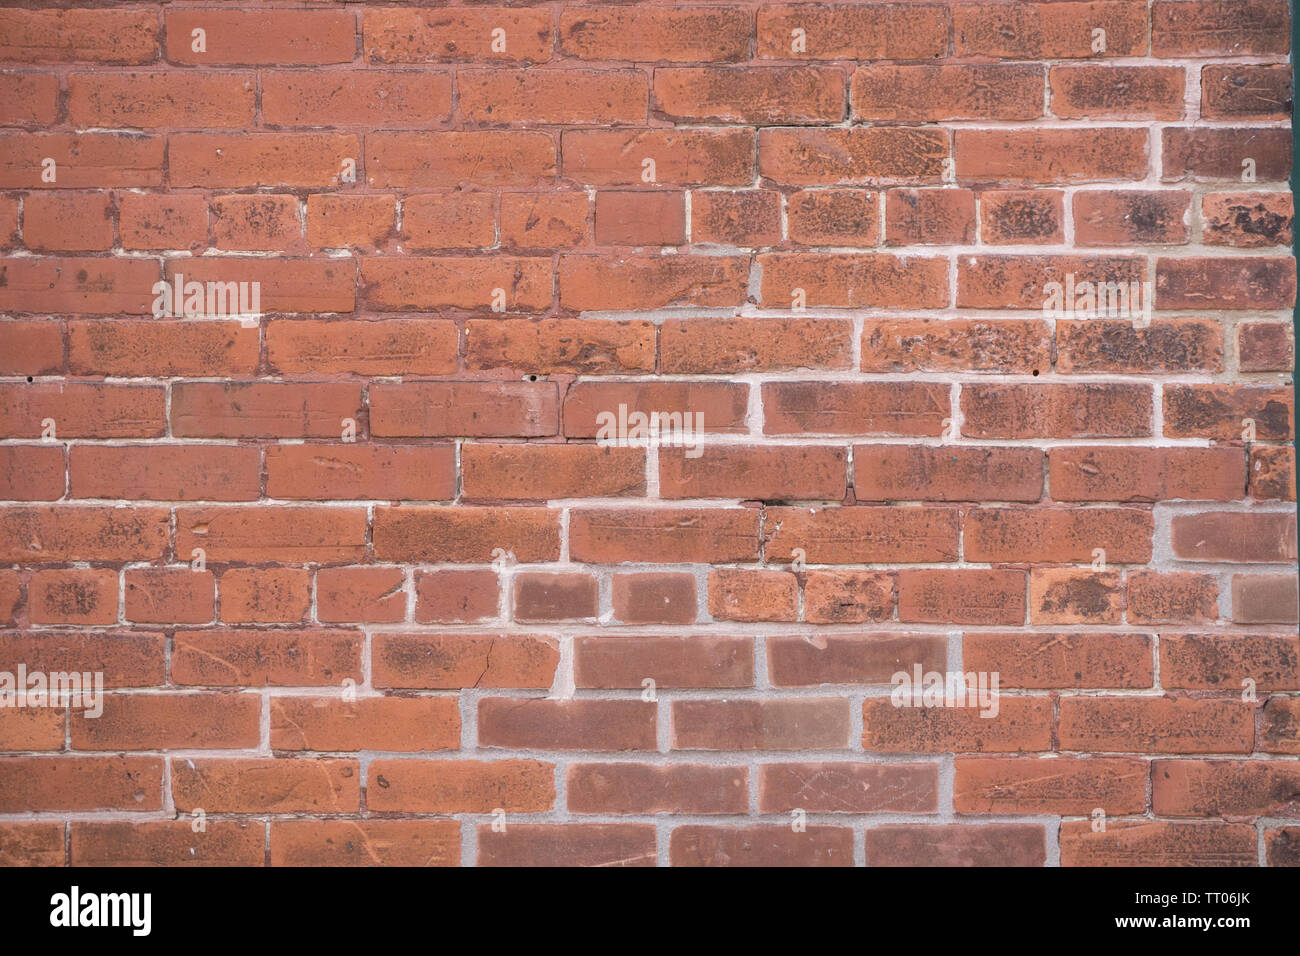 Canada Toronto - Stone Wall in Distillery District, June 2019 - Stock Image